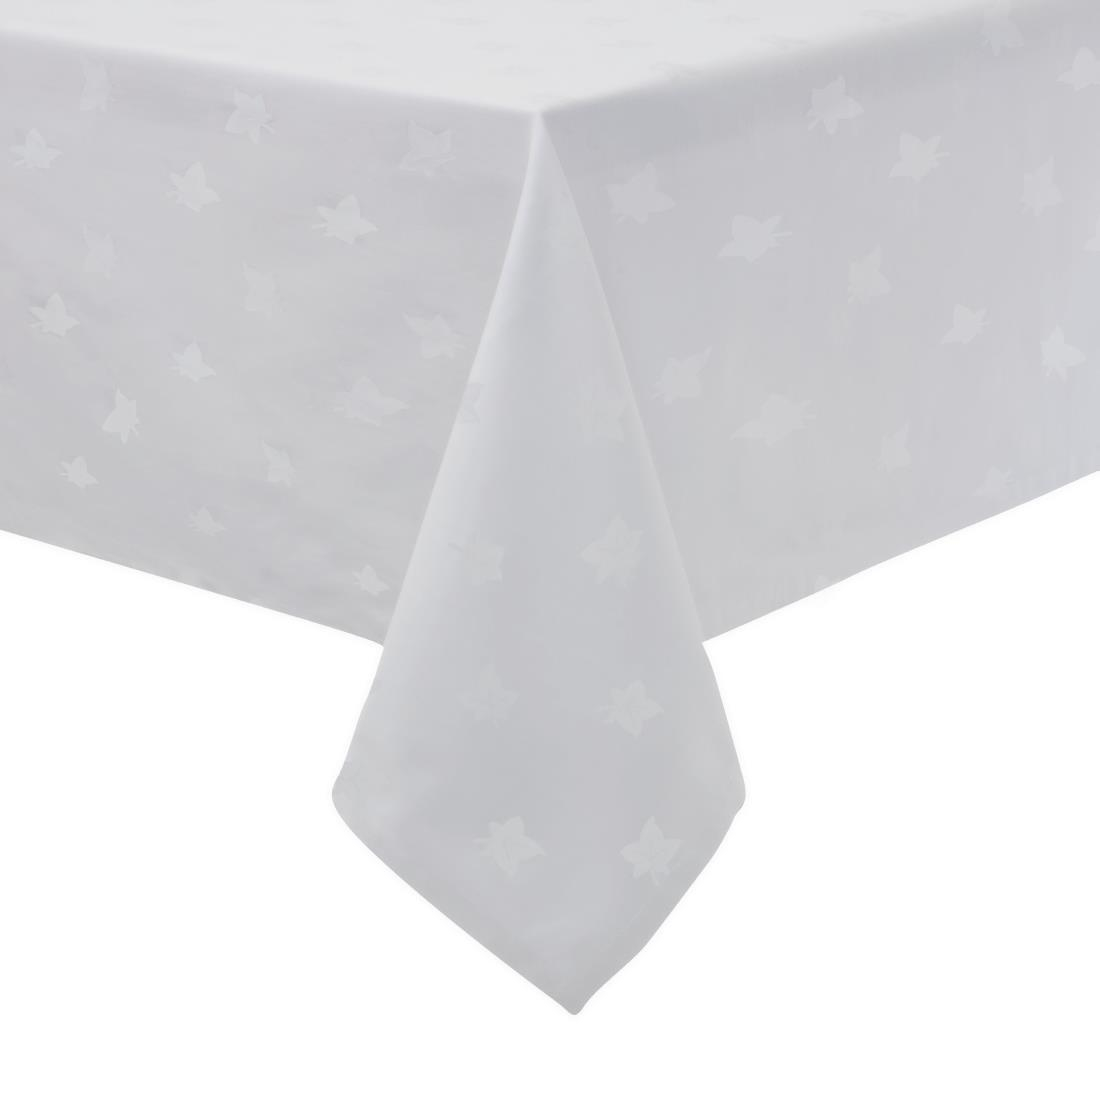 Image of Mitre Luxury Luxor Tablecloth Ivy Leaf White 1350 x 1350mm